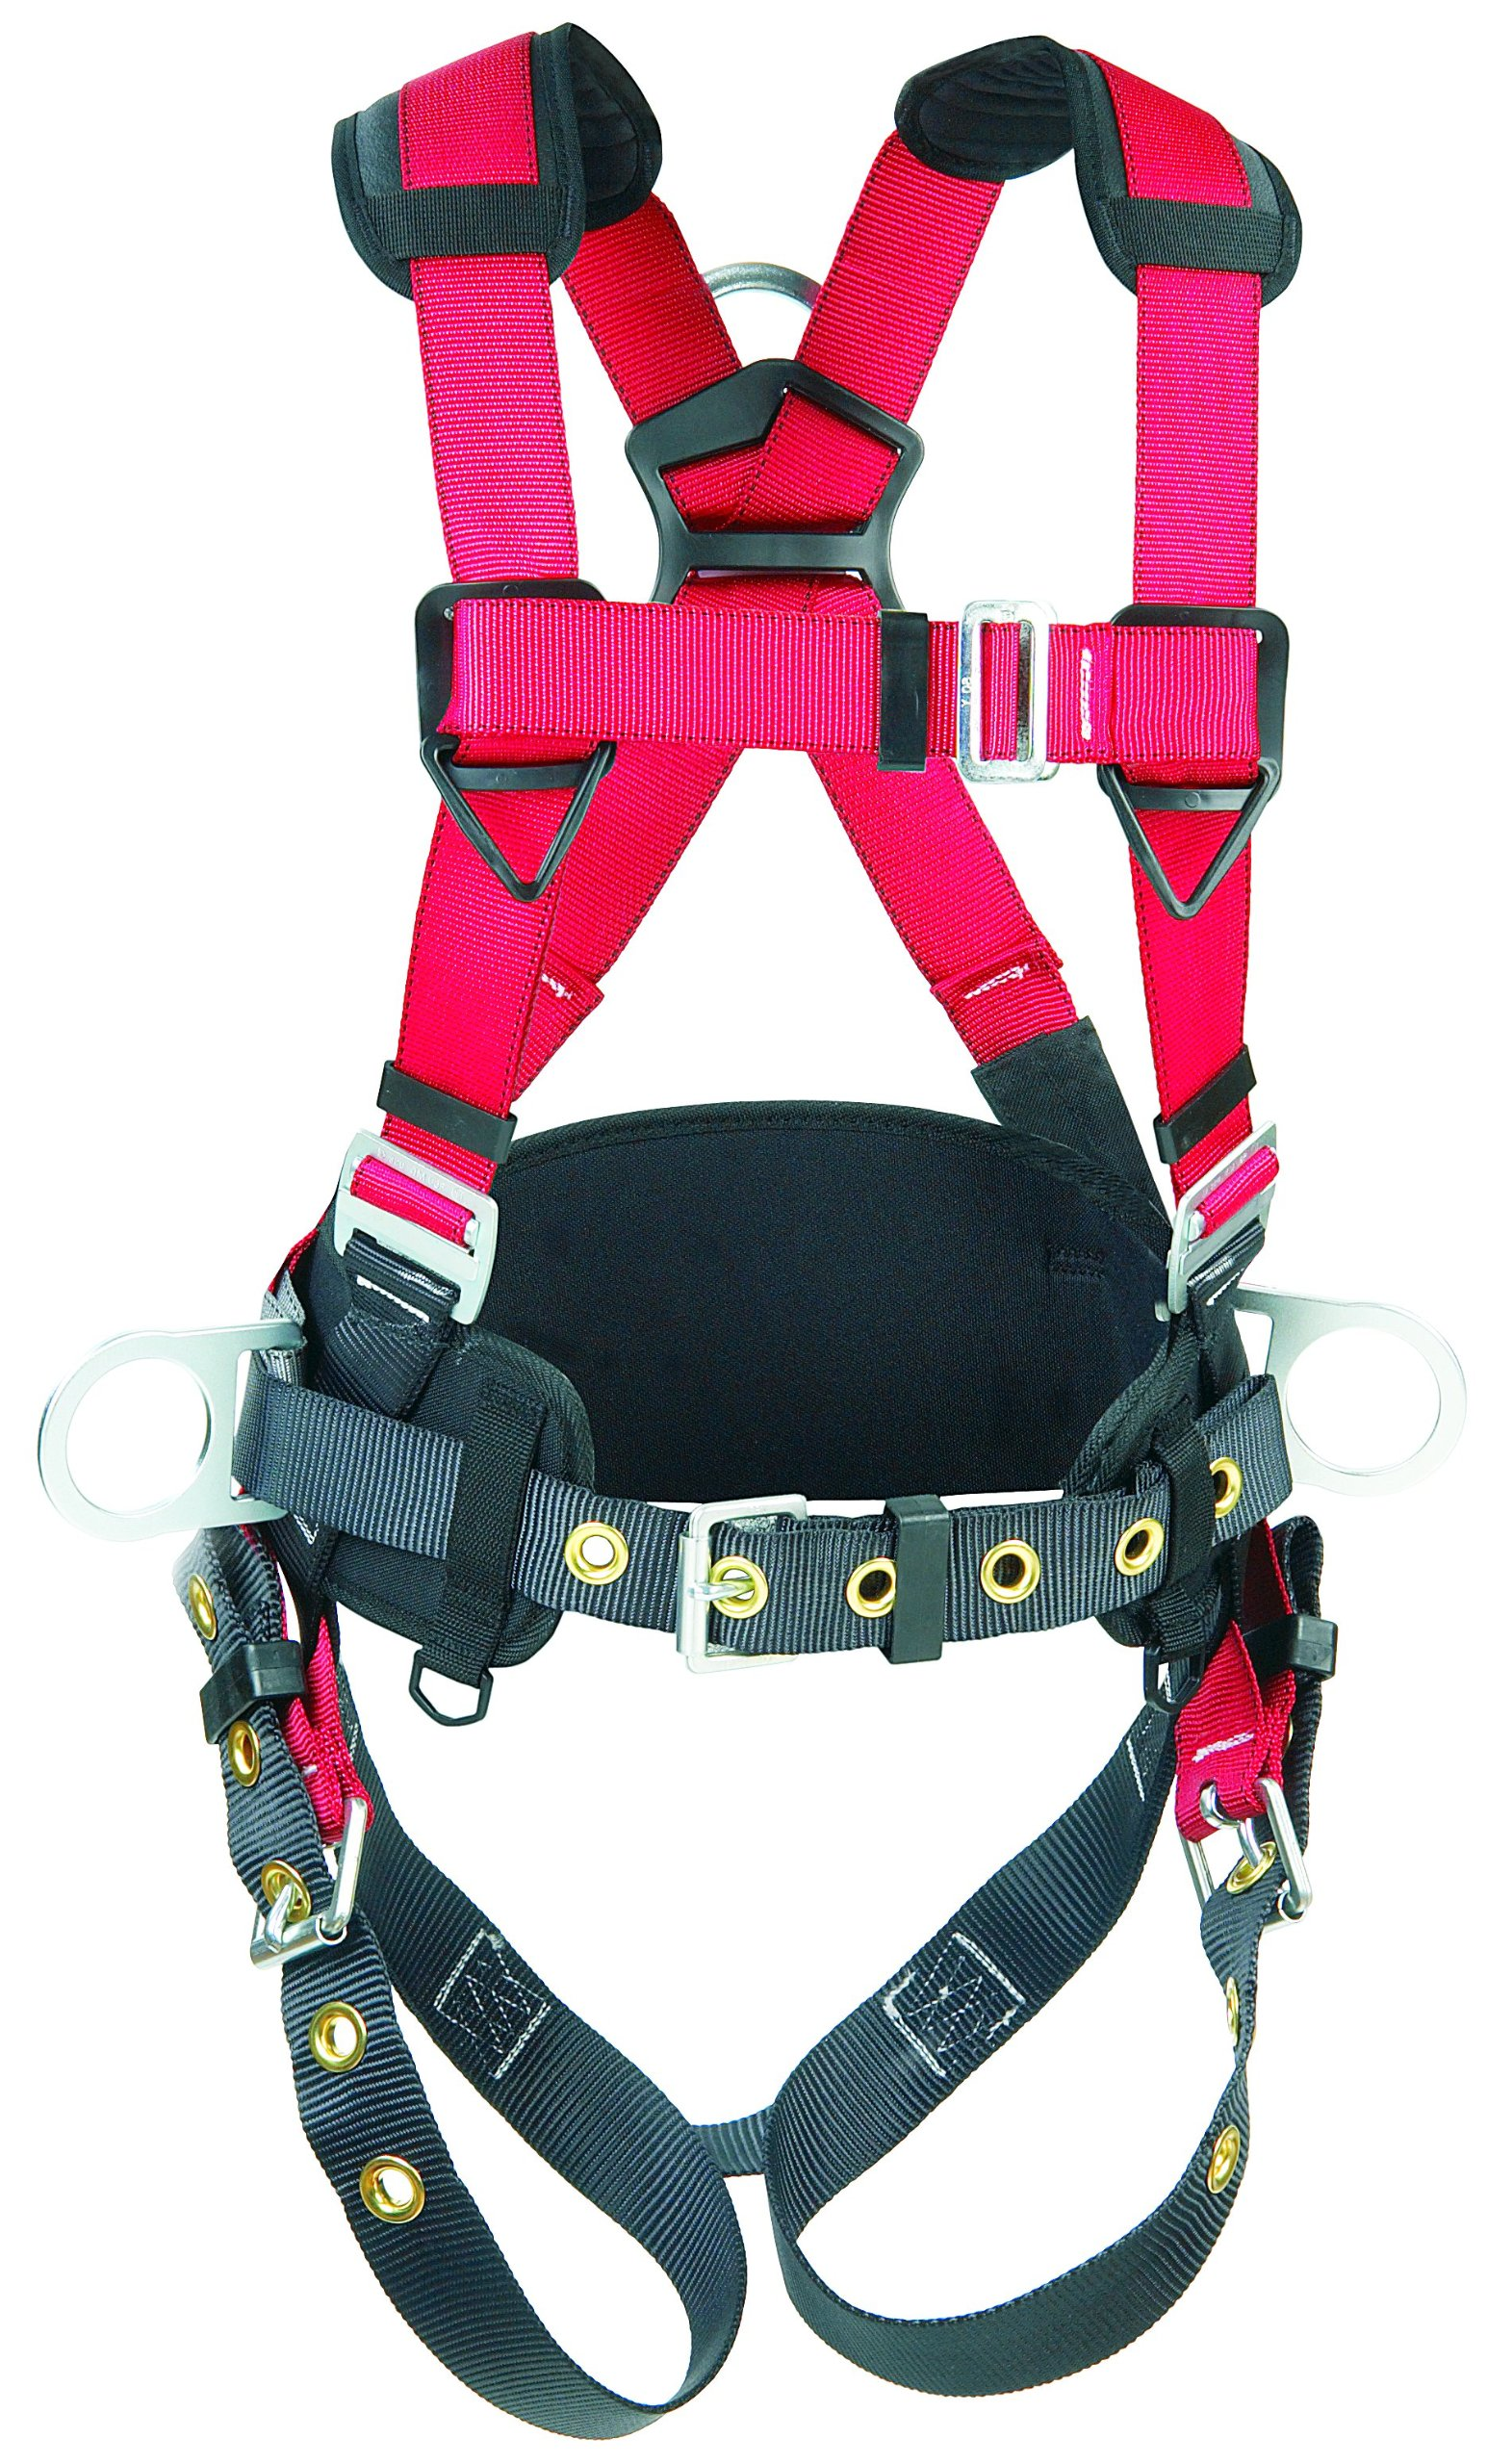 Protecta 1191209''Pro Line'' Construction Vest Style Full Body Harness, Medium/Large, Red/Gray